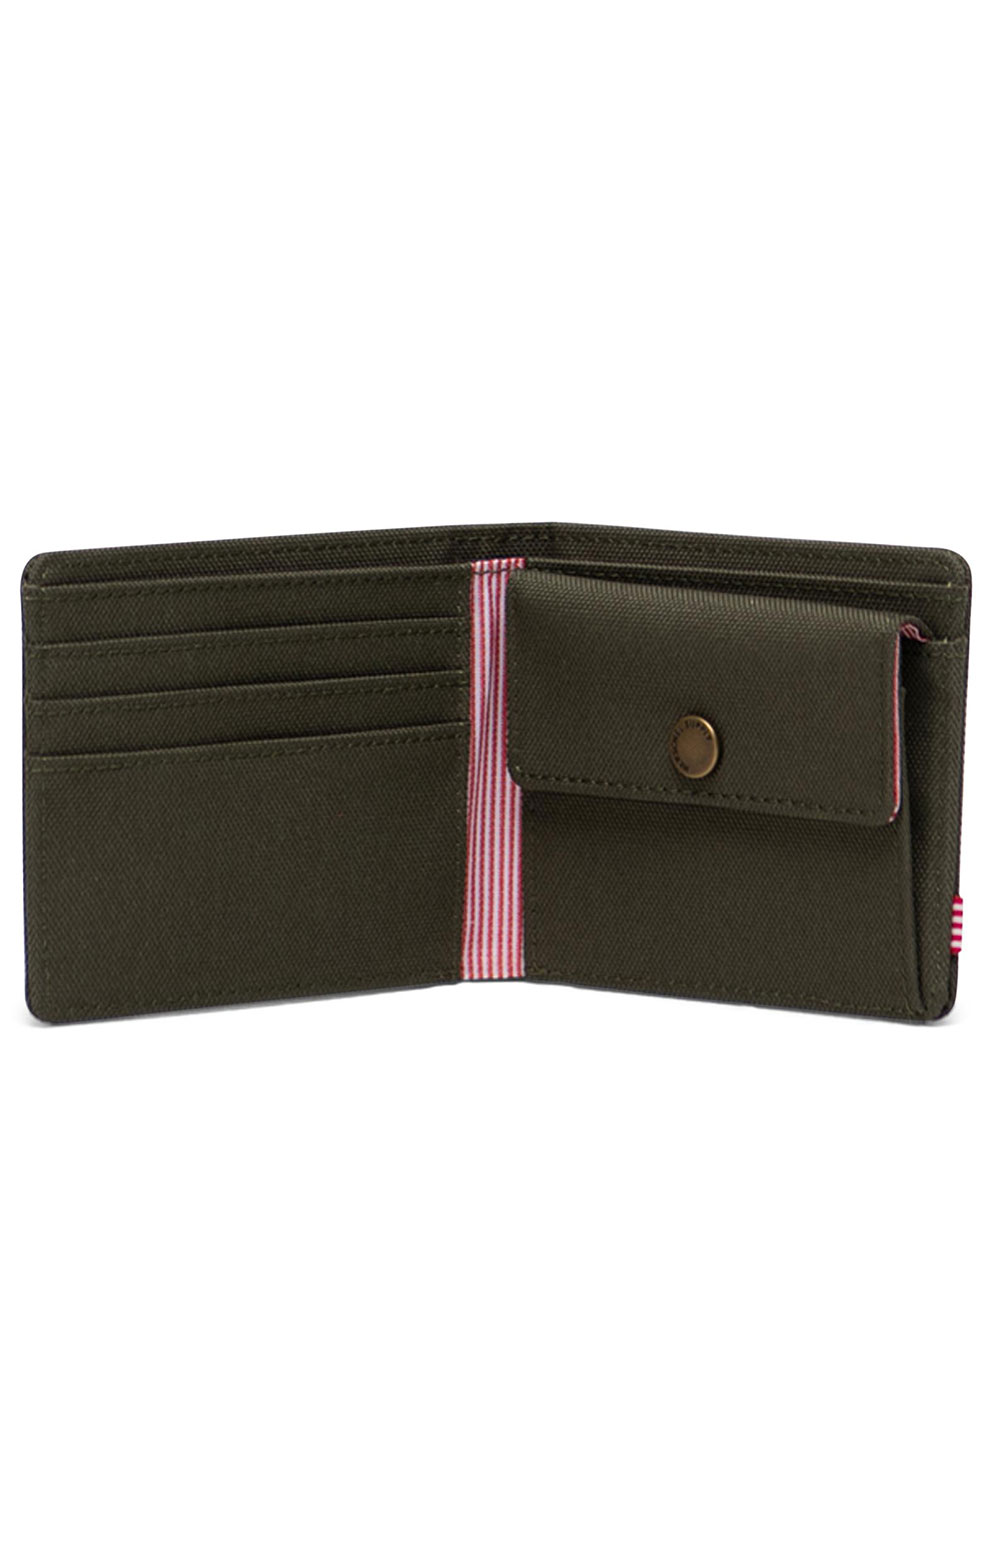 Roy Coin Wallet - Ivy Green  2